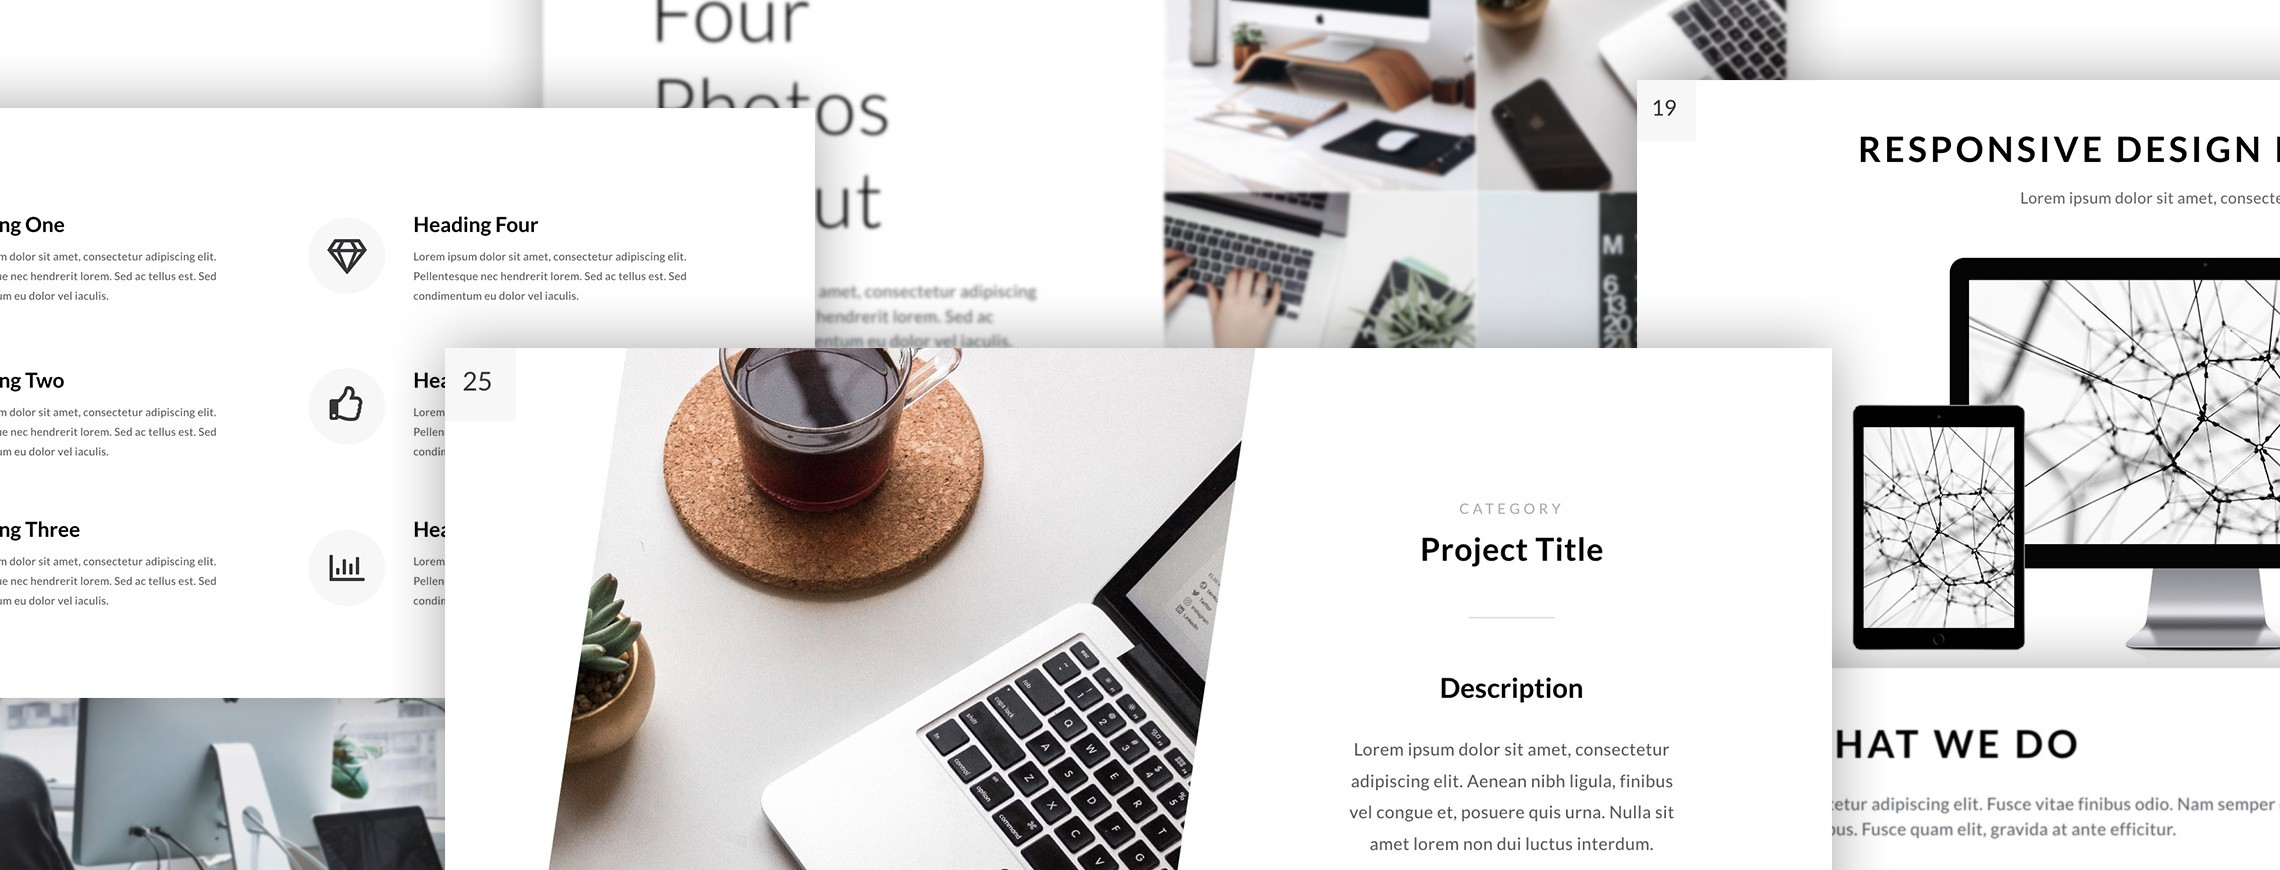 Simple, Clean, Minimalist Keynote Templates for Amazing Presentations